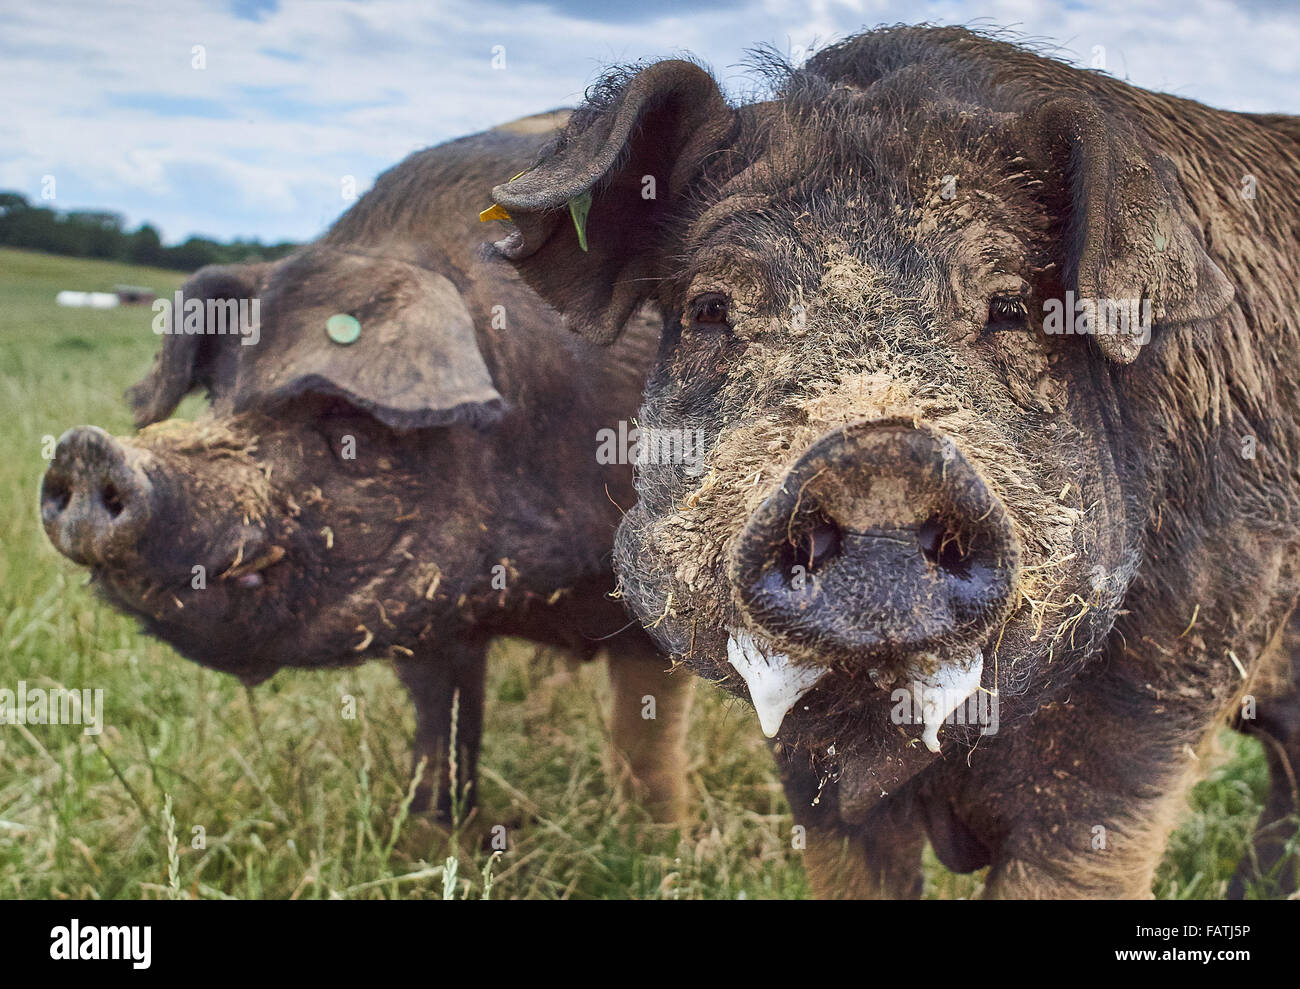 Close up Head shot of free range pigs in a grass field Stock Photo